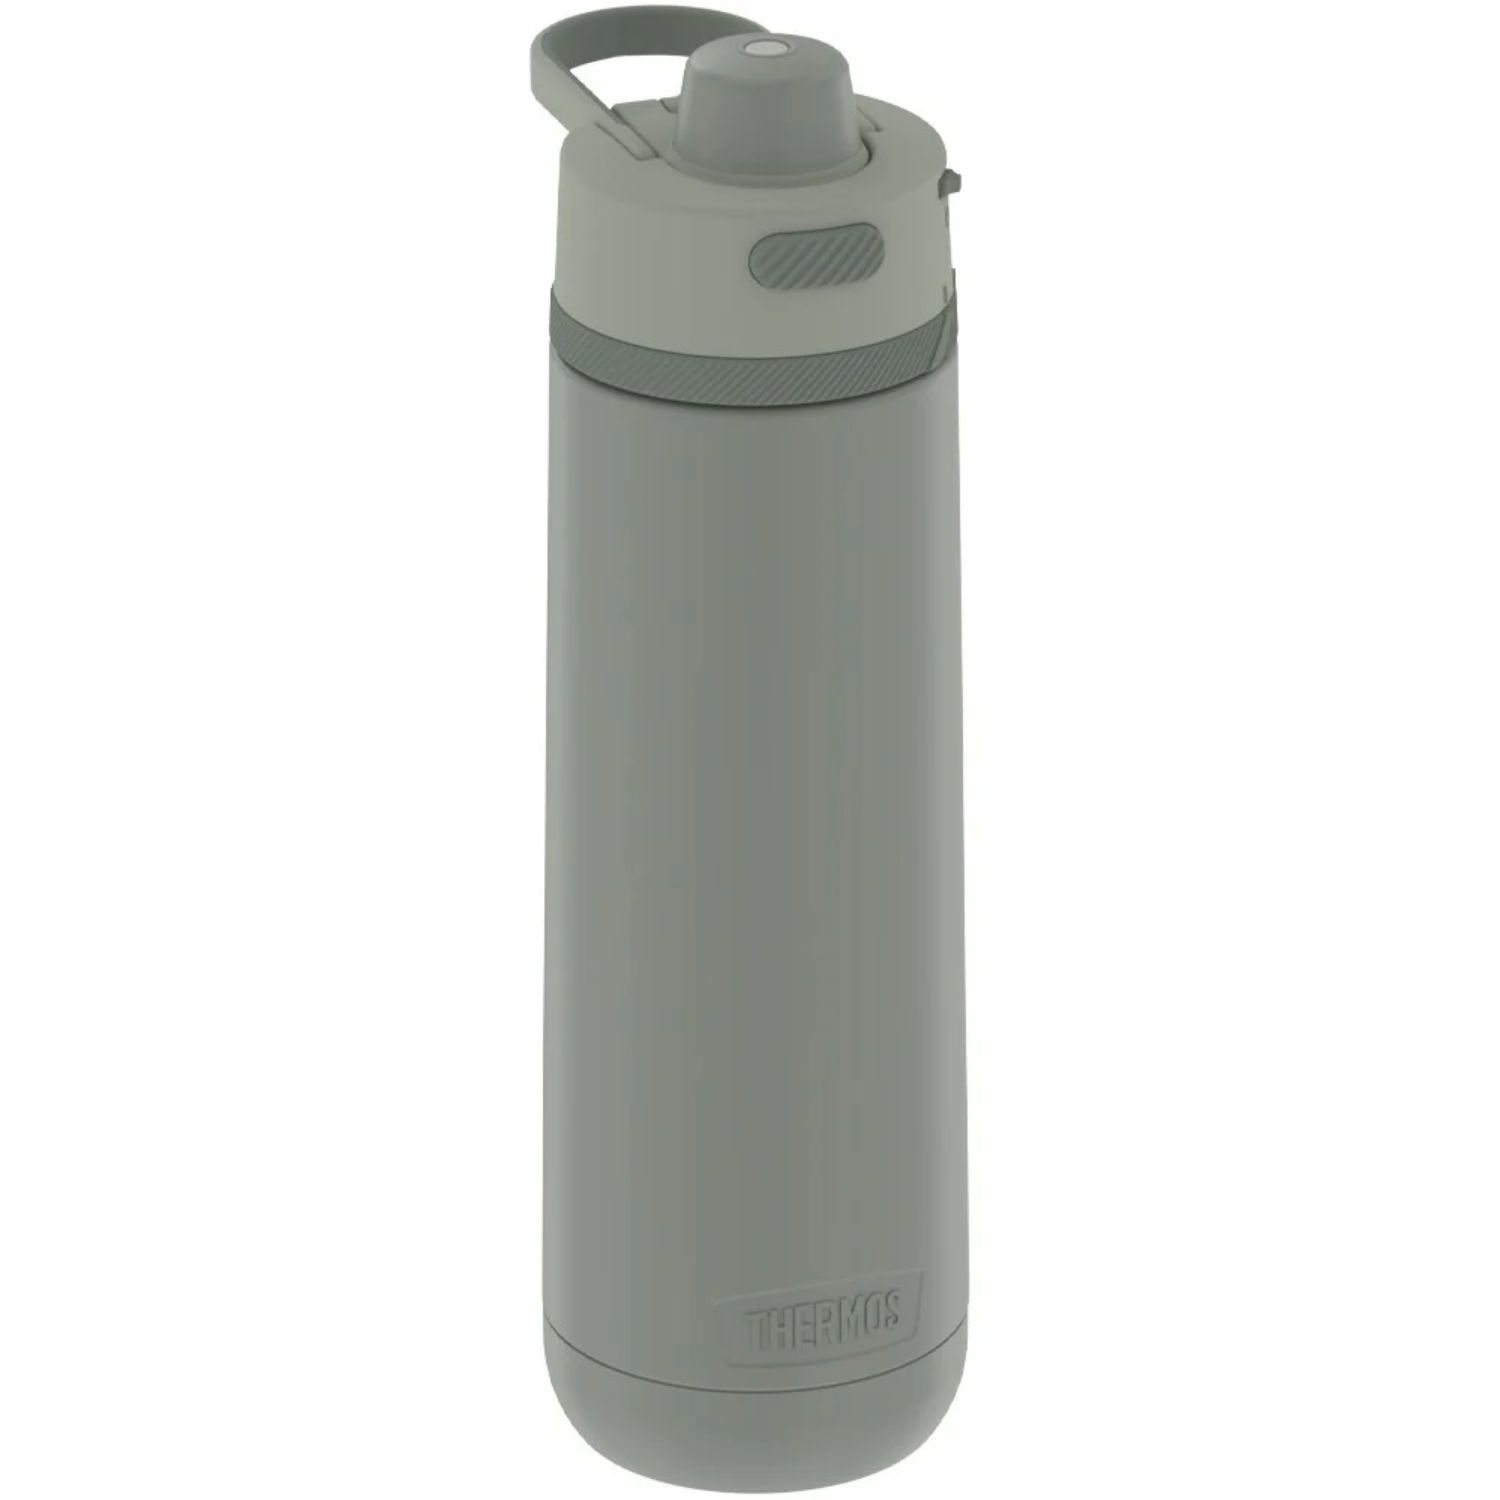 Thermos 24 oz Stainless Steel Hydration Bottle Green